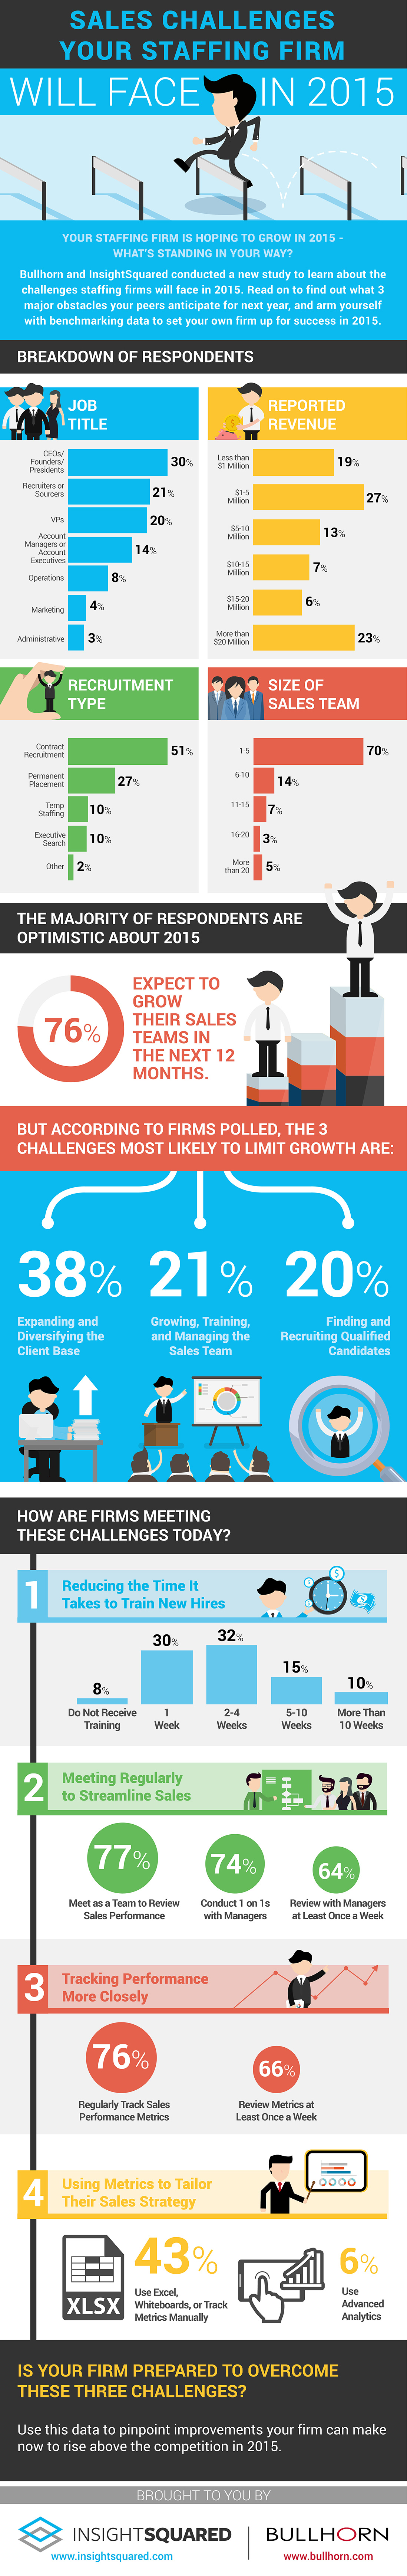 Bullhorn_InsightSquared_2015SalesTrends_Infographic_Final